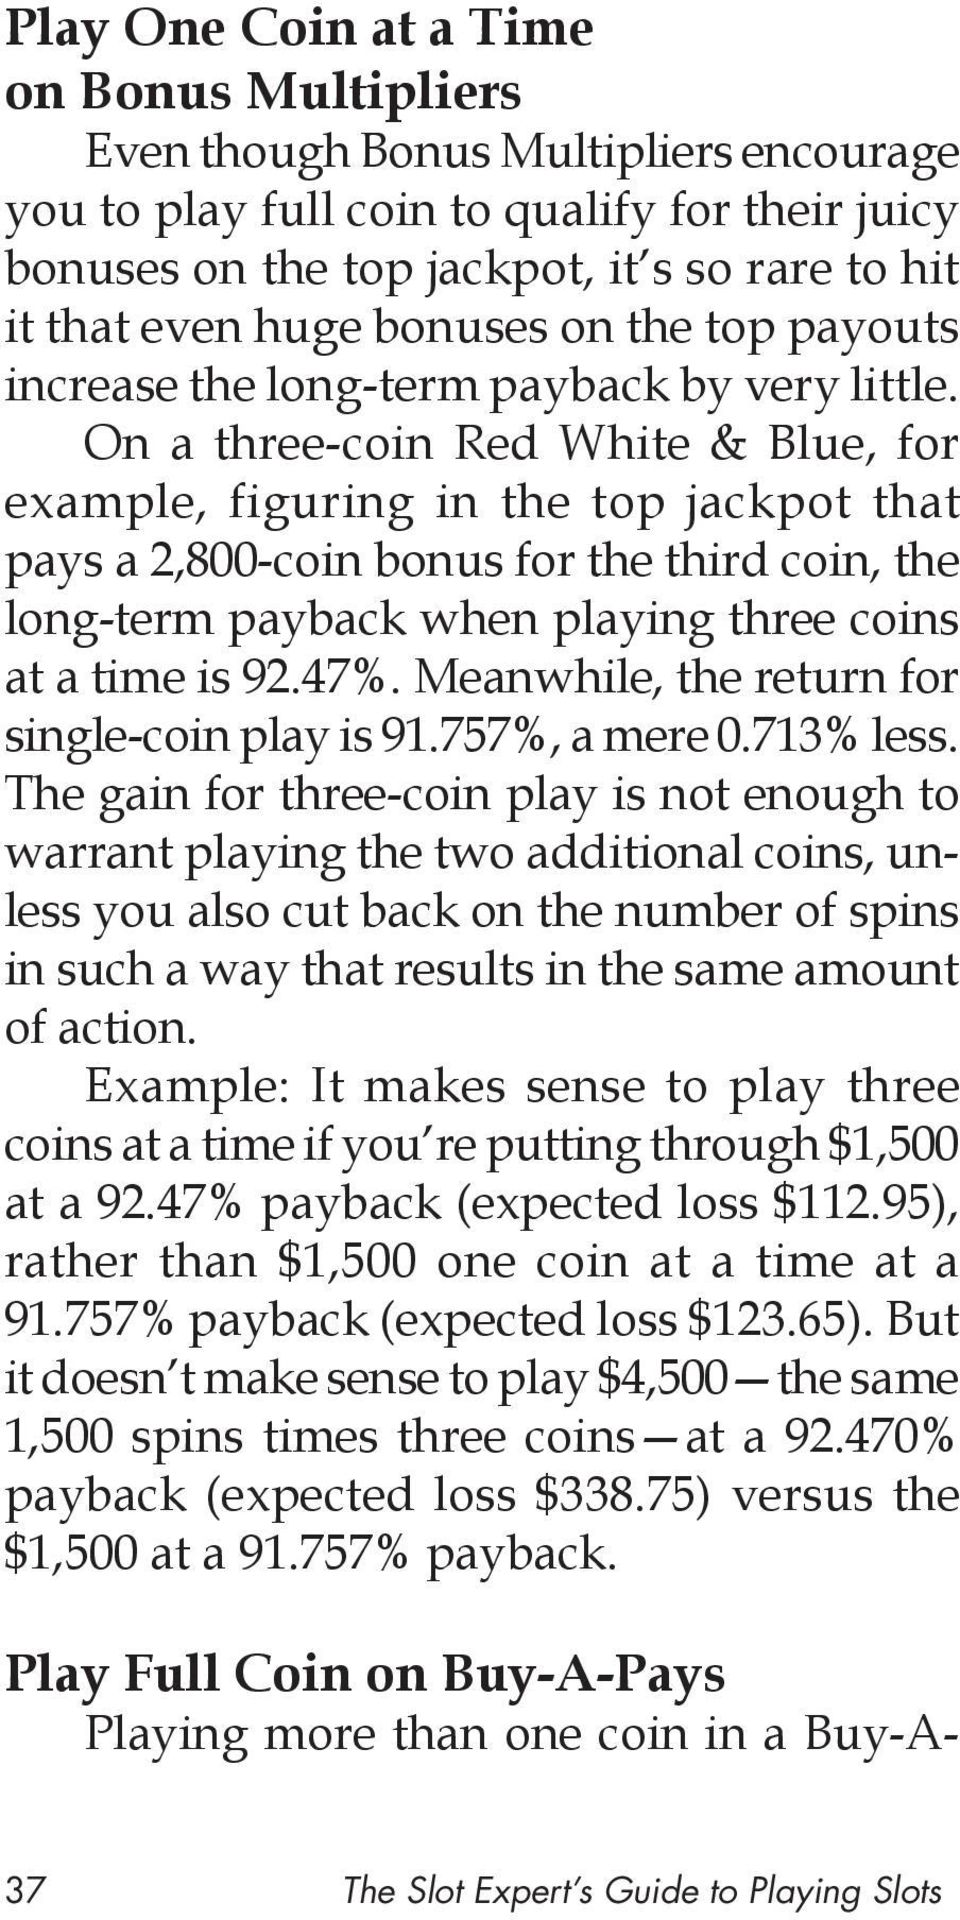 On a three-coin Red White & Blue, for example, figuring in the top jackpot that pays a 2,800-coin bonus for the third coin, the long-term payback when playing three coins at a time is 92.47%.